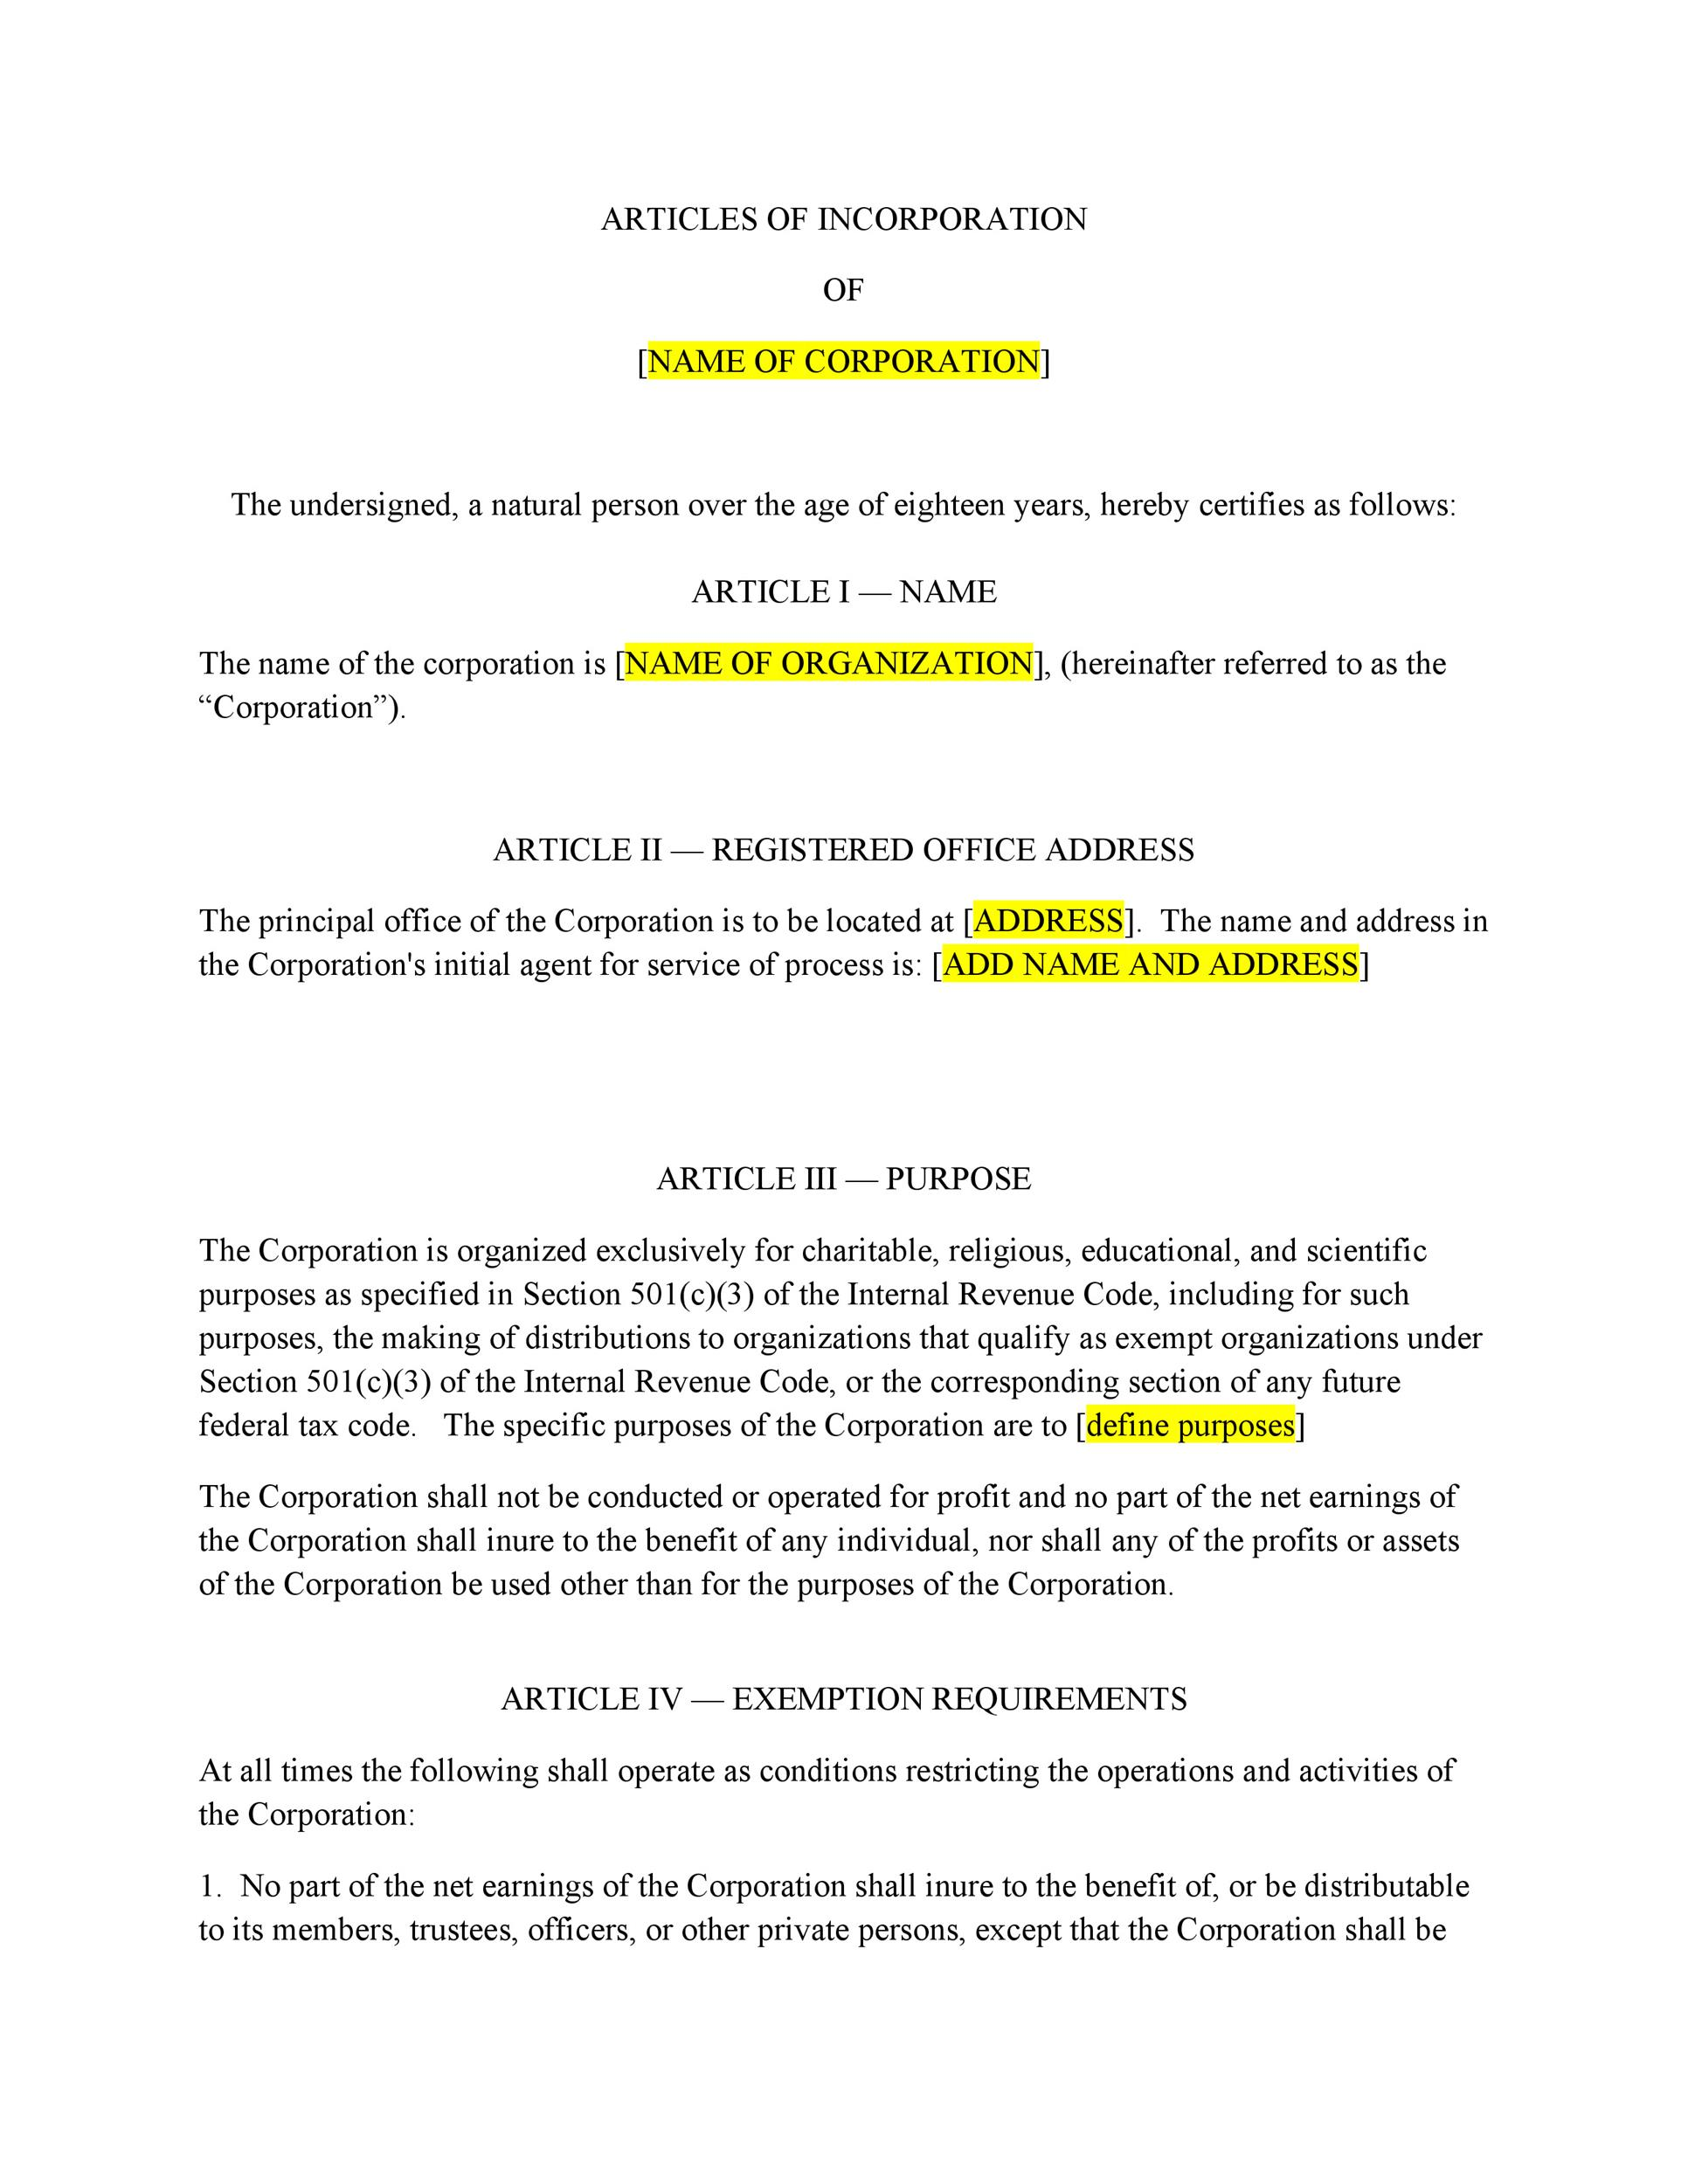 Free articles of incorporation template 04